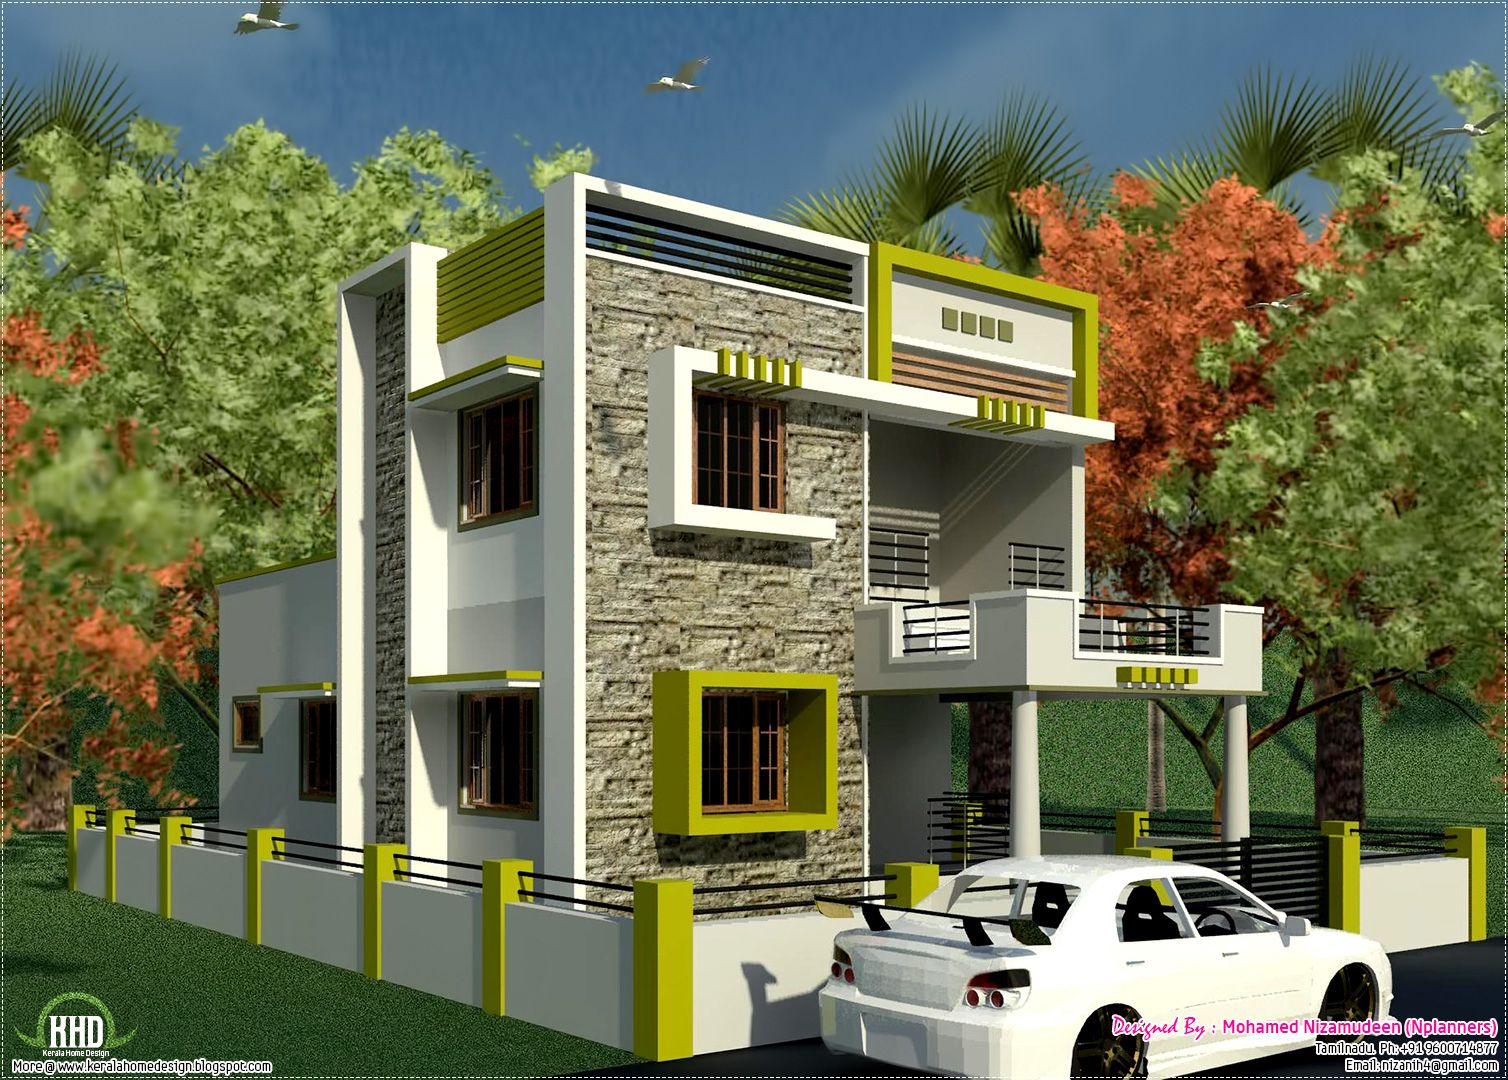 Small house with car park design tobfav com ideas for Indian small house exterior design